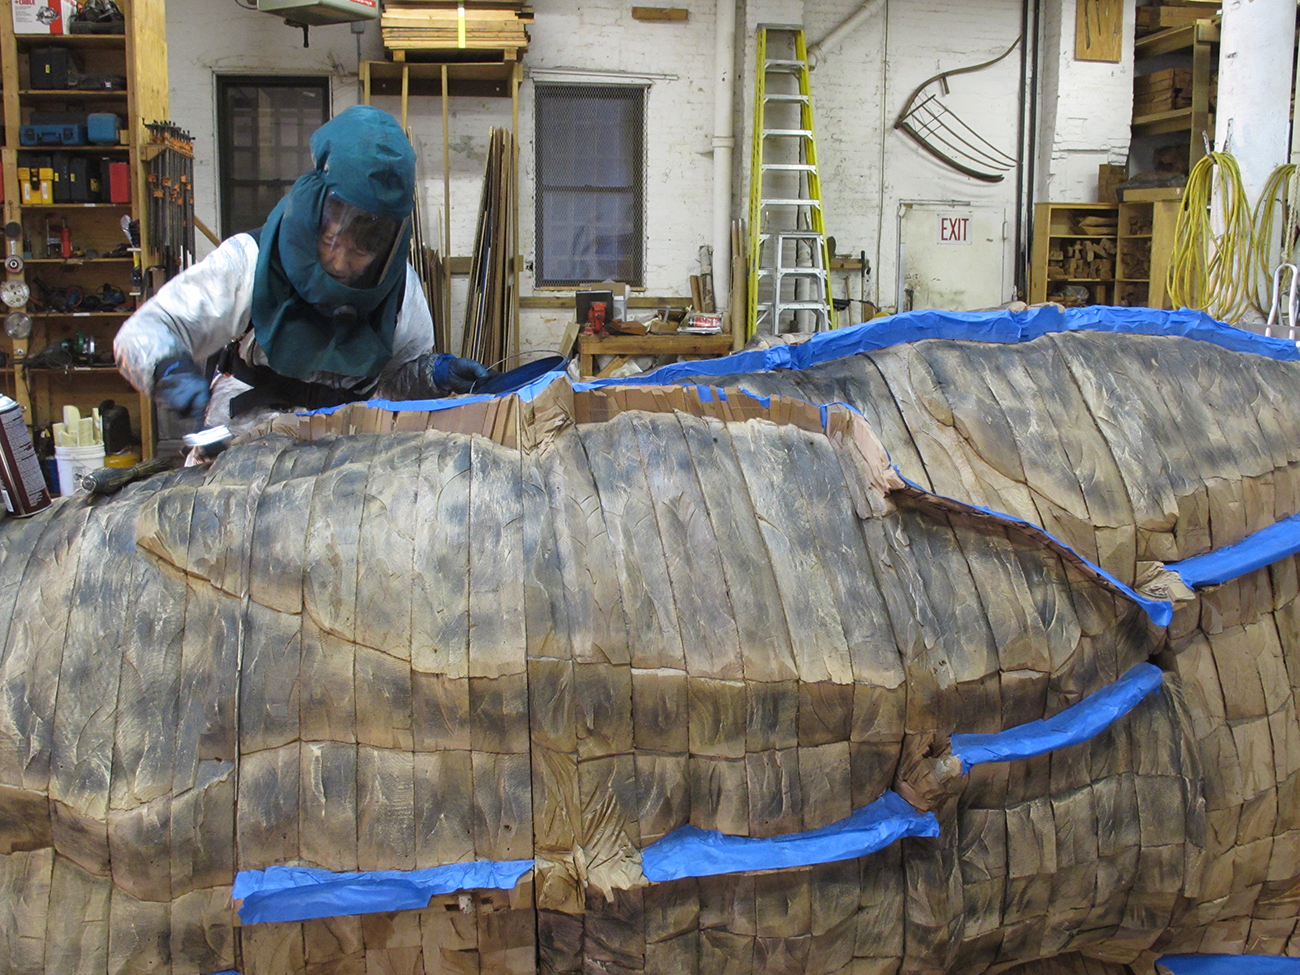 Ursula von Rydingsvard applying graphite to OCEAN VOICES, 2012. The artist wears a full protective suit.